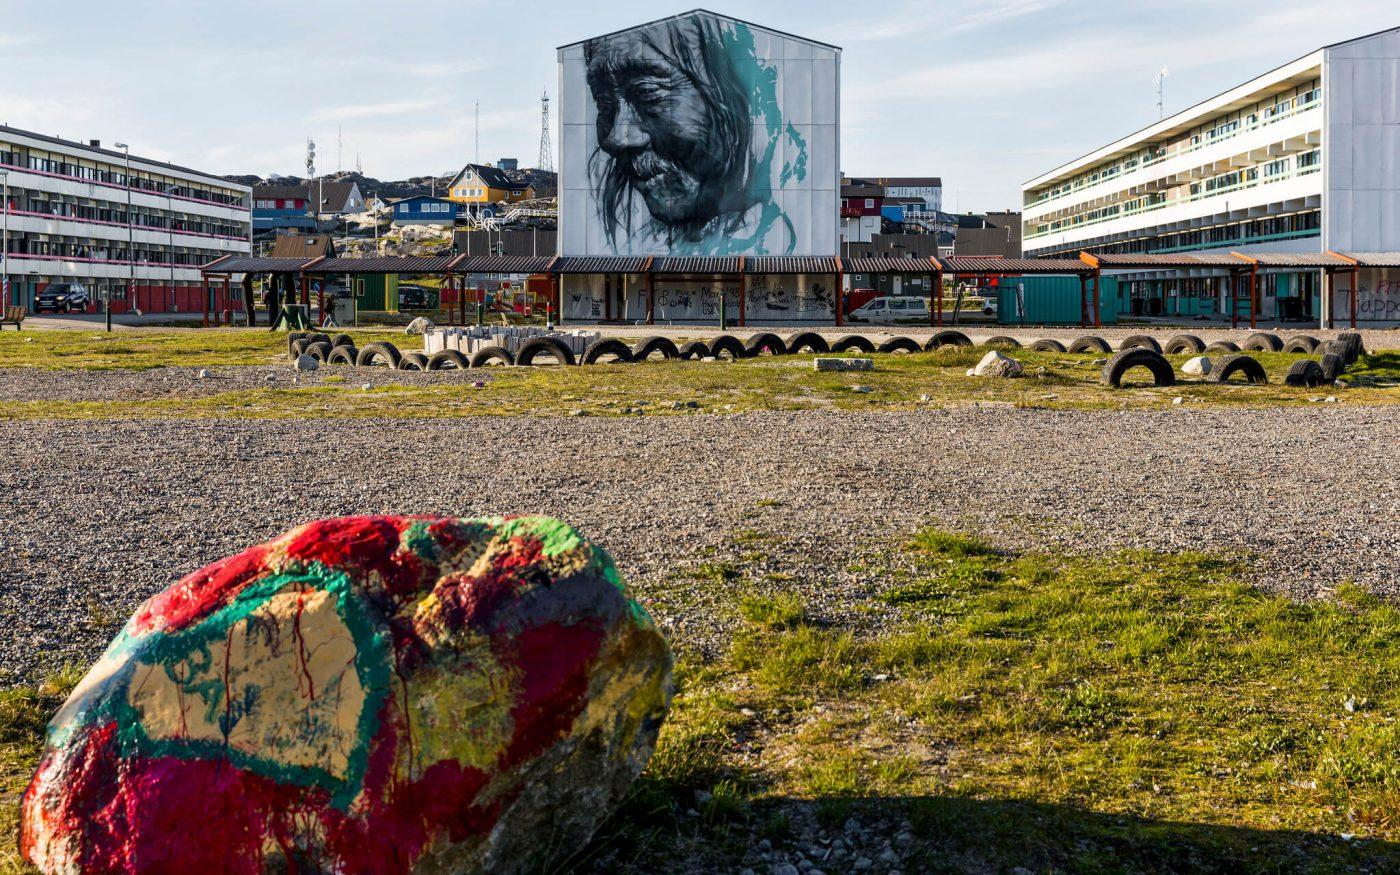 Colours and Art in Nuuk. By Daniel Gurrola